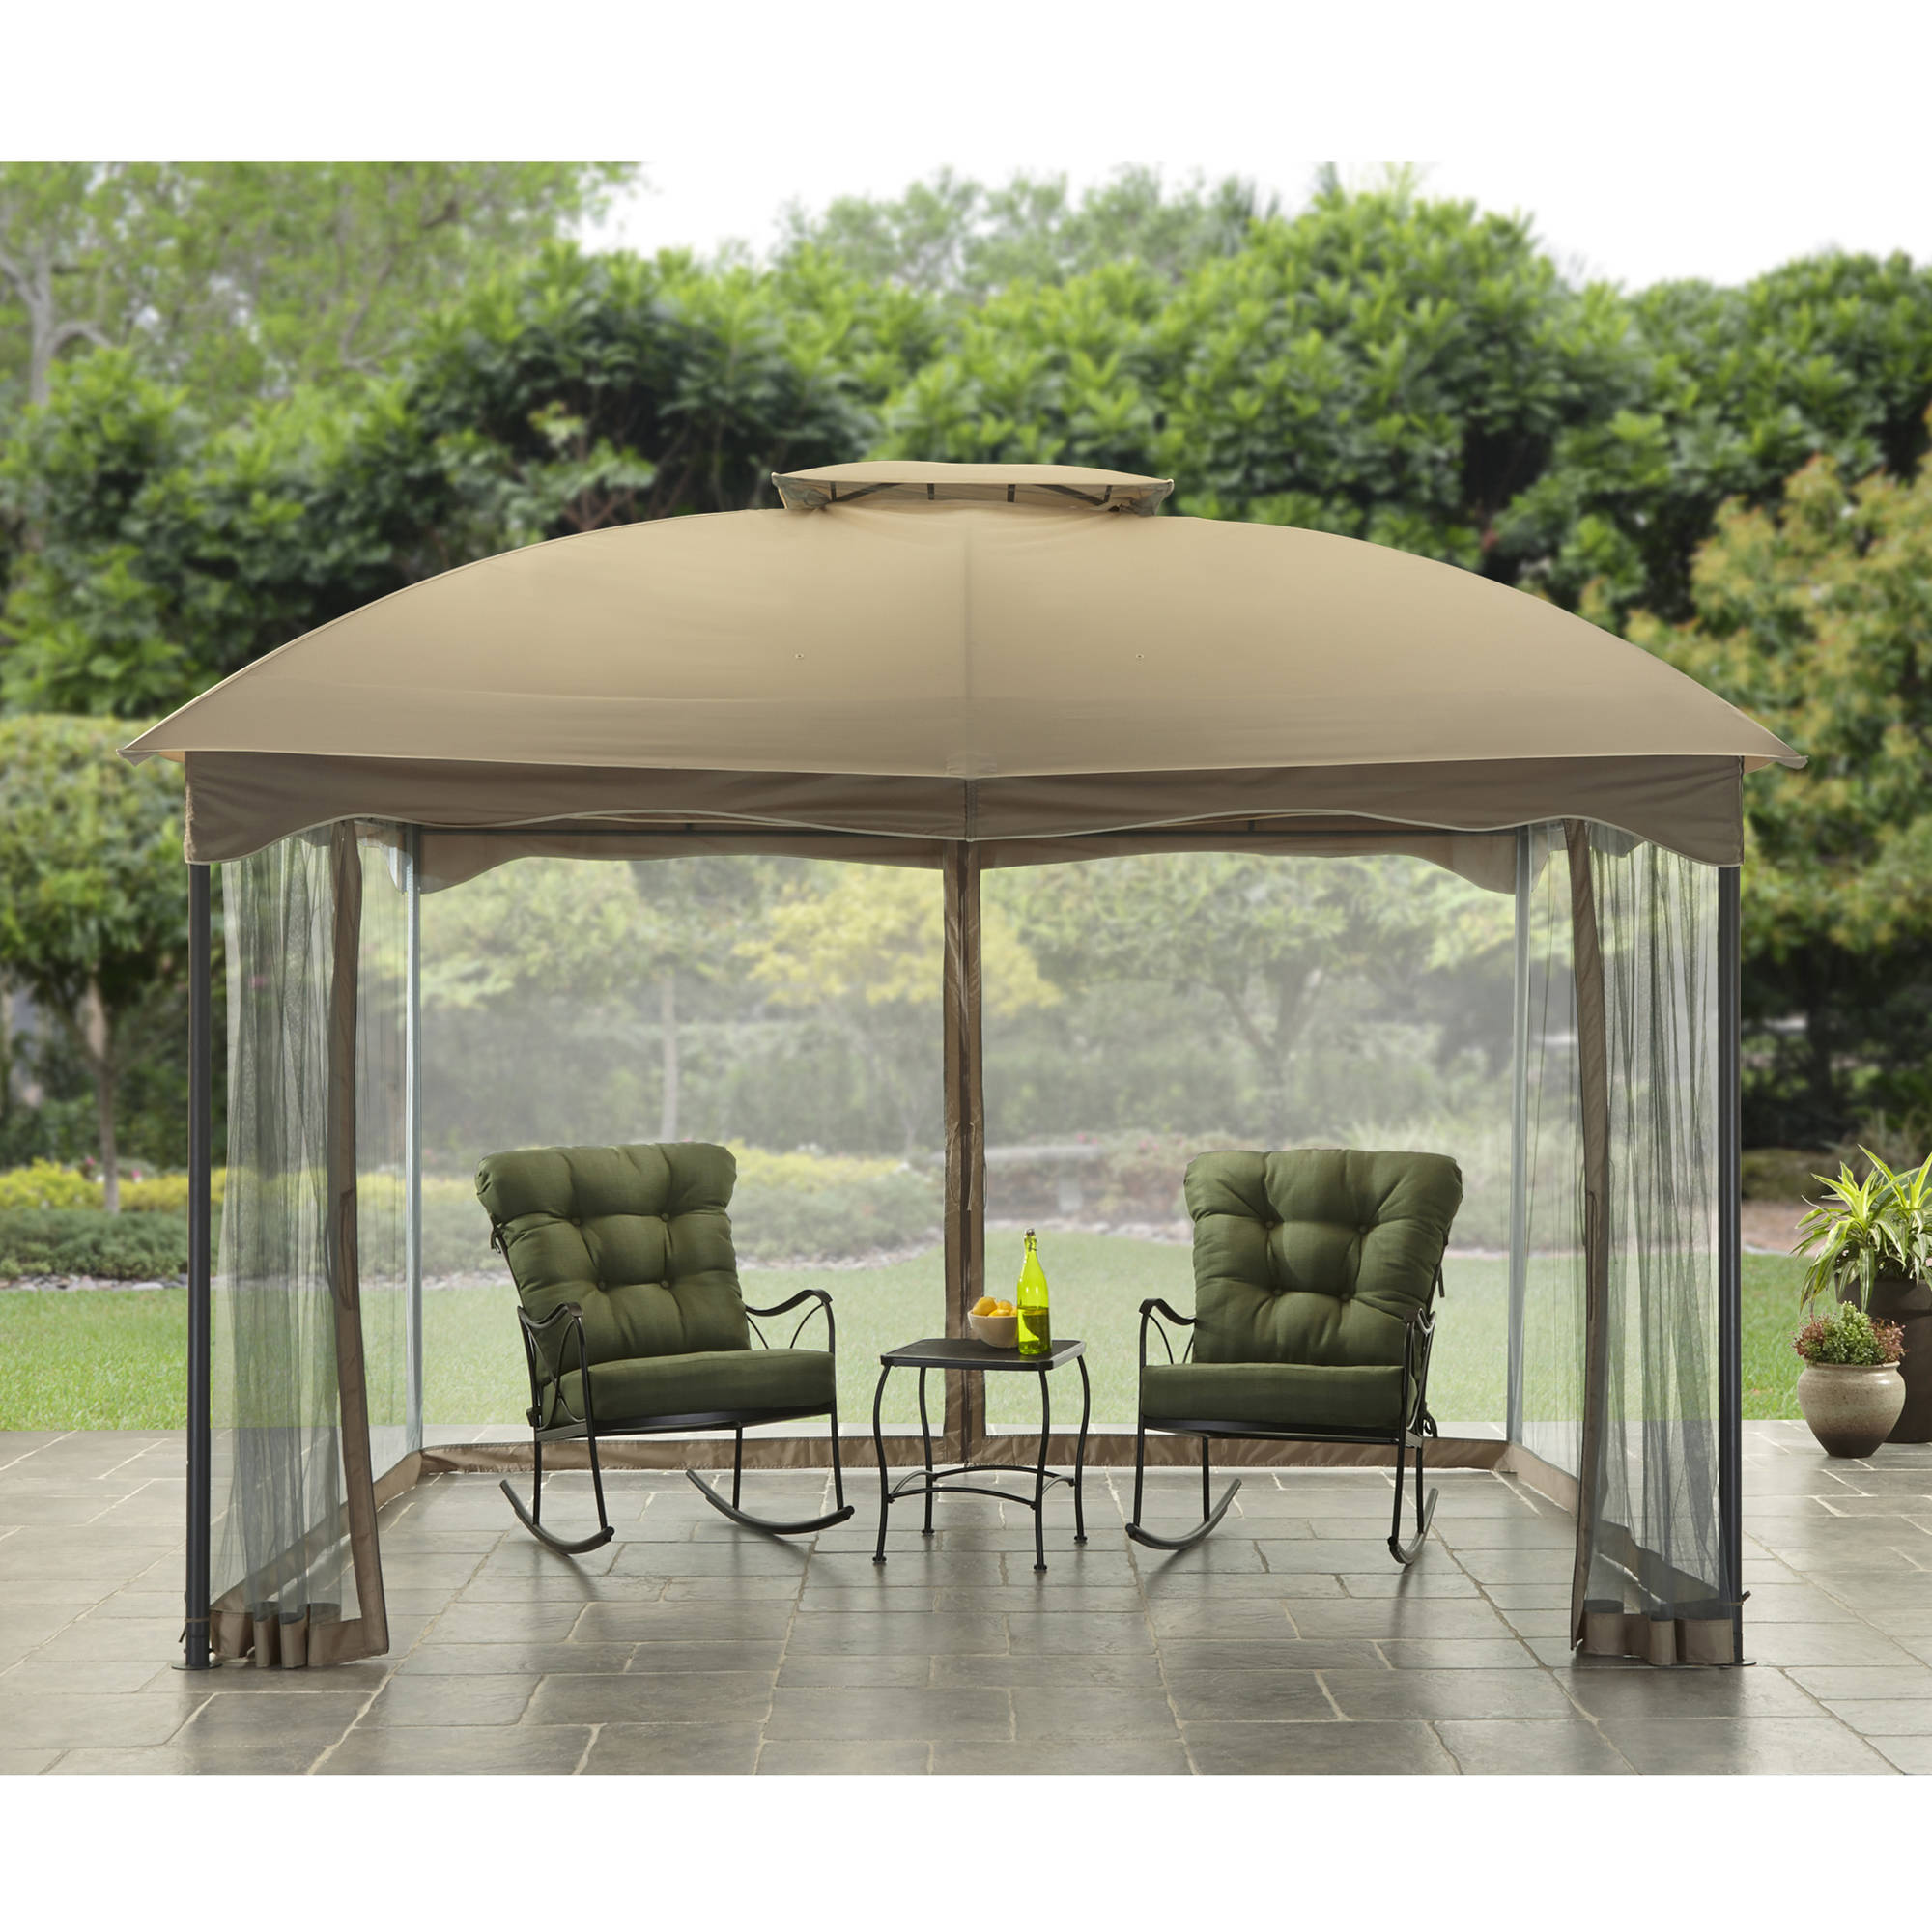 Better Homes and Garden Hollow 10' x 12' Cabin Style Gazebo